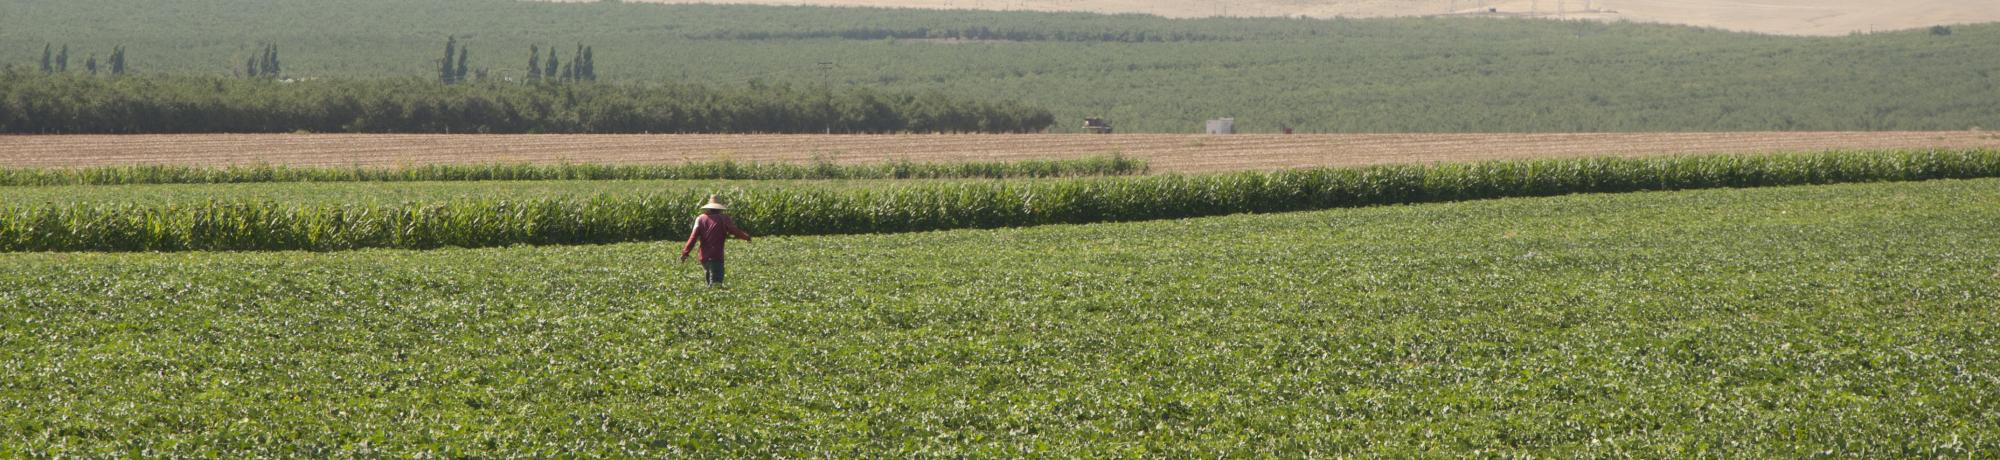 Farmworker walking through rows of green crops with brown hills and powerlines in background